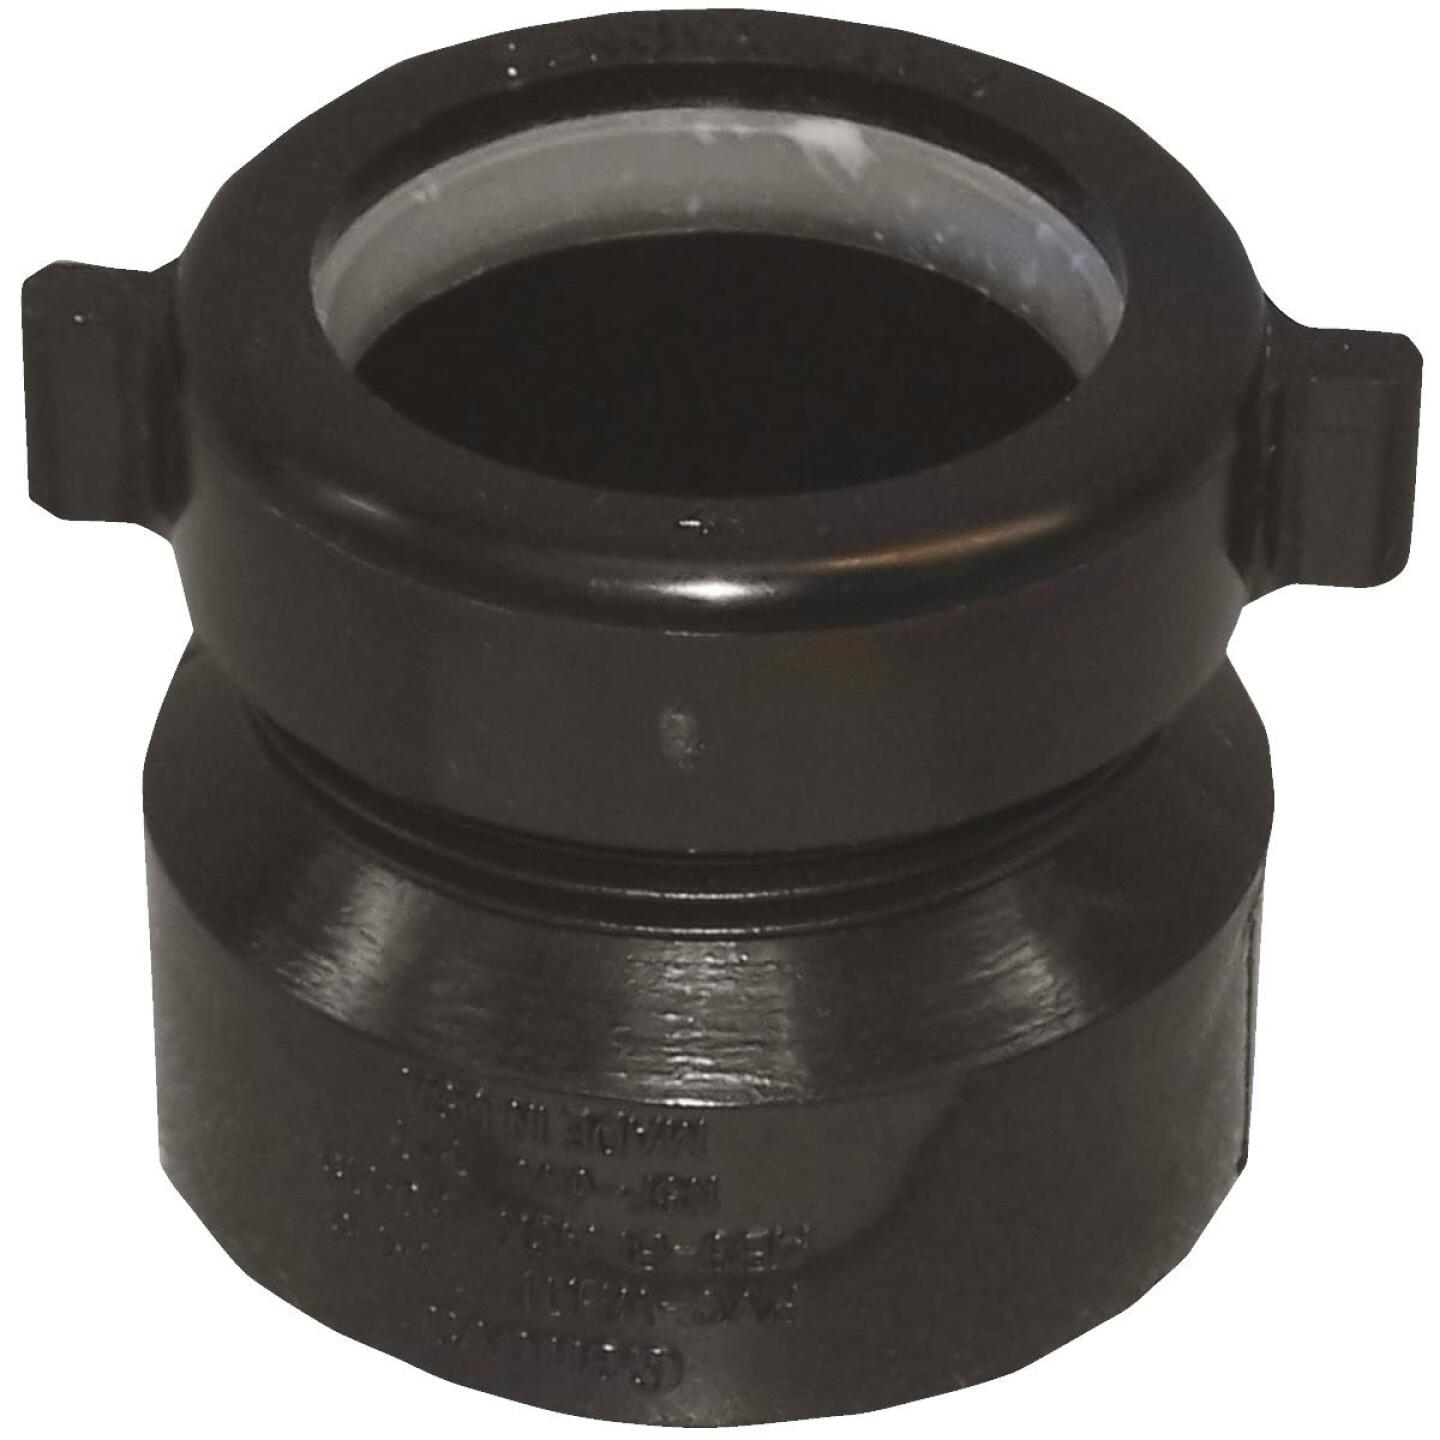 Charlotte Pipe 1-1/2 In. x 1-1/2 In. Black ABS Waste Adapter Image 1